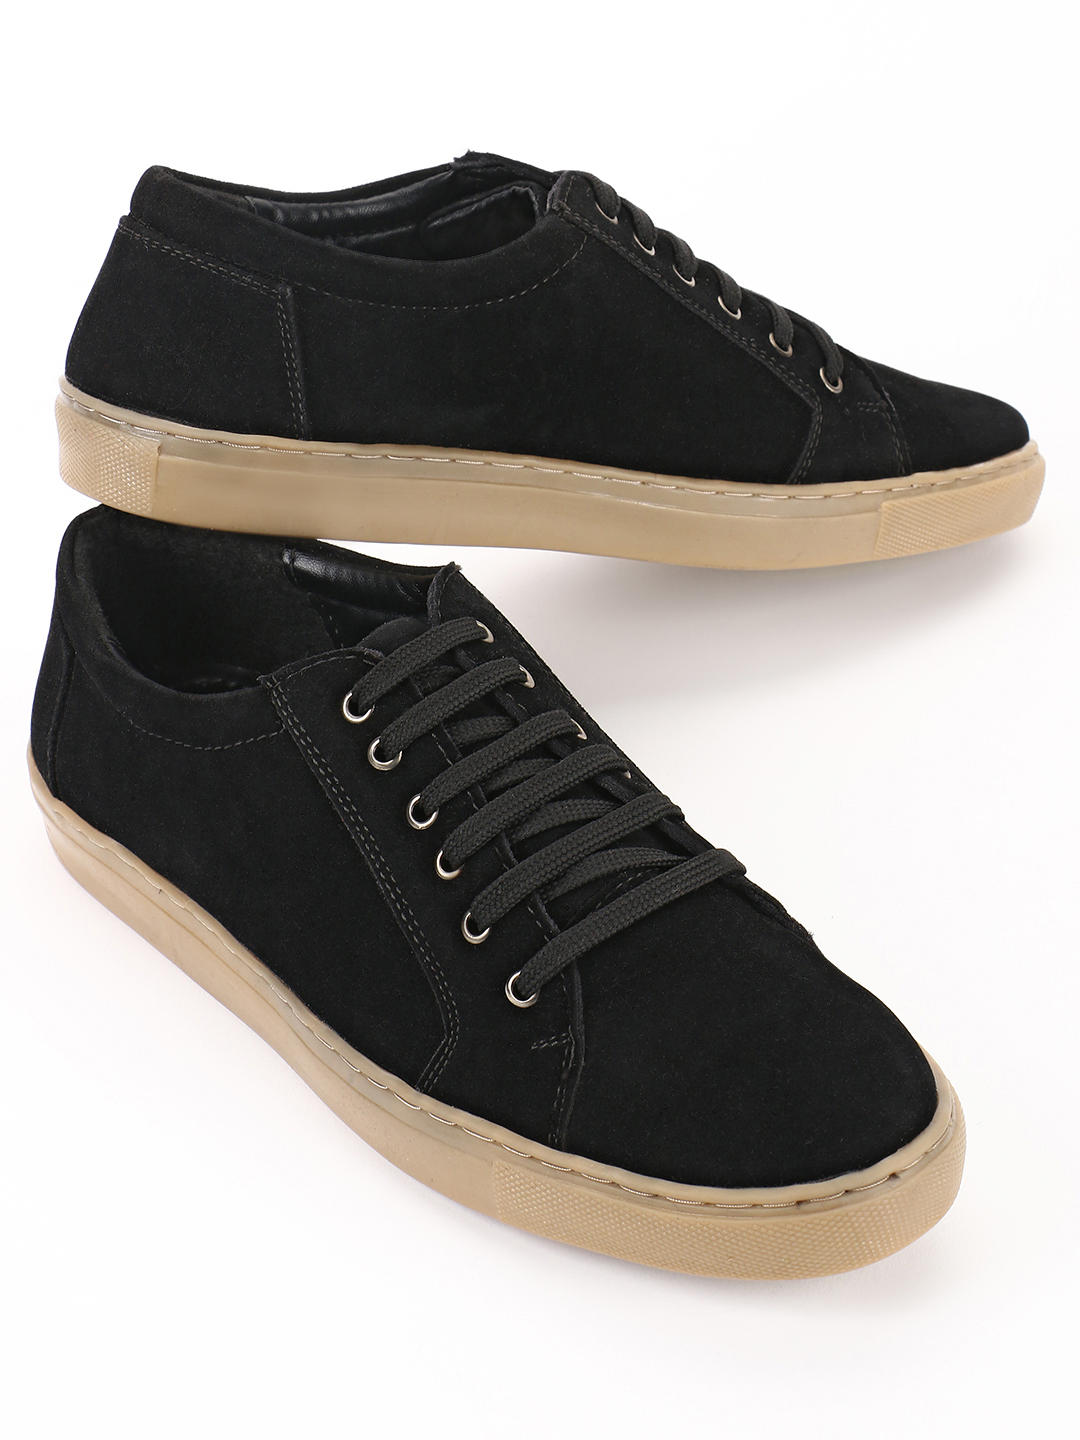 Bolt Of The Good Stuff Black Suede Lace-Up Sneakers 1